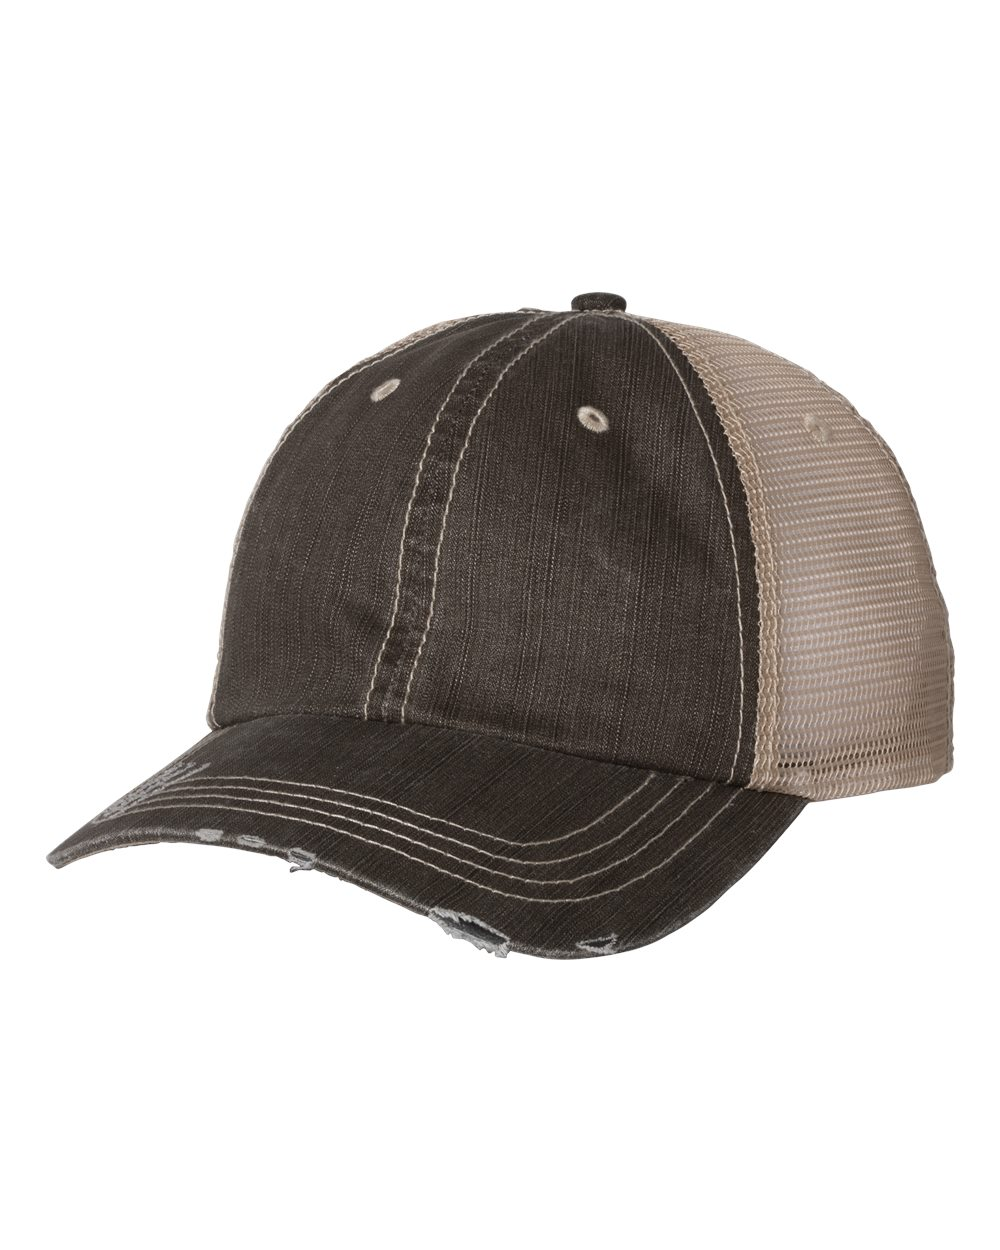 BROWN KHAKI WITH LEATHER PATCH CUSTOM CAP